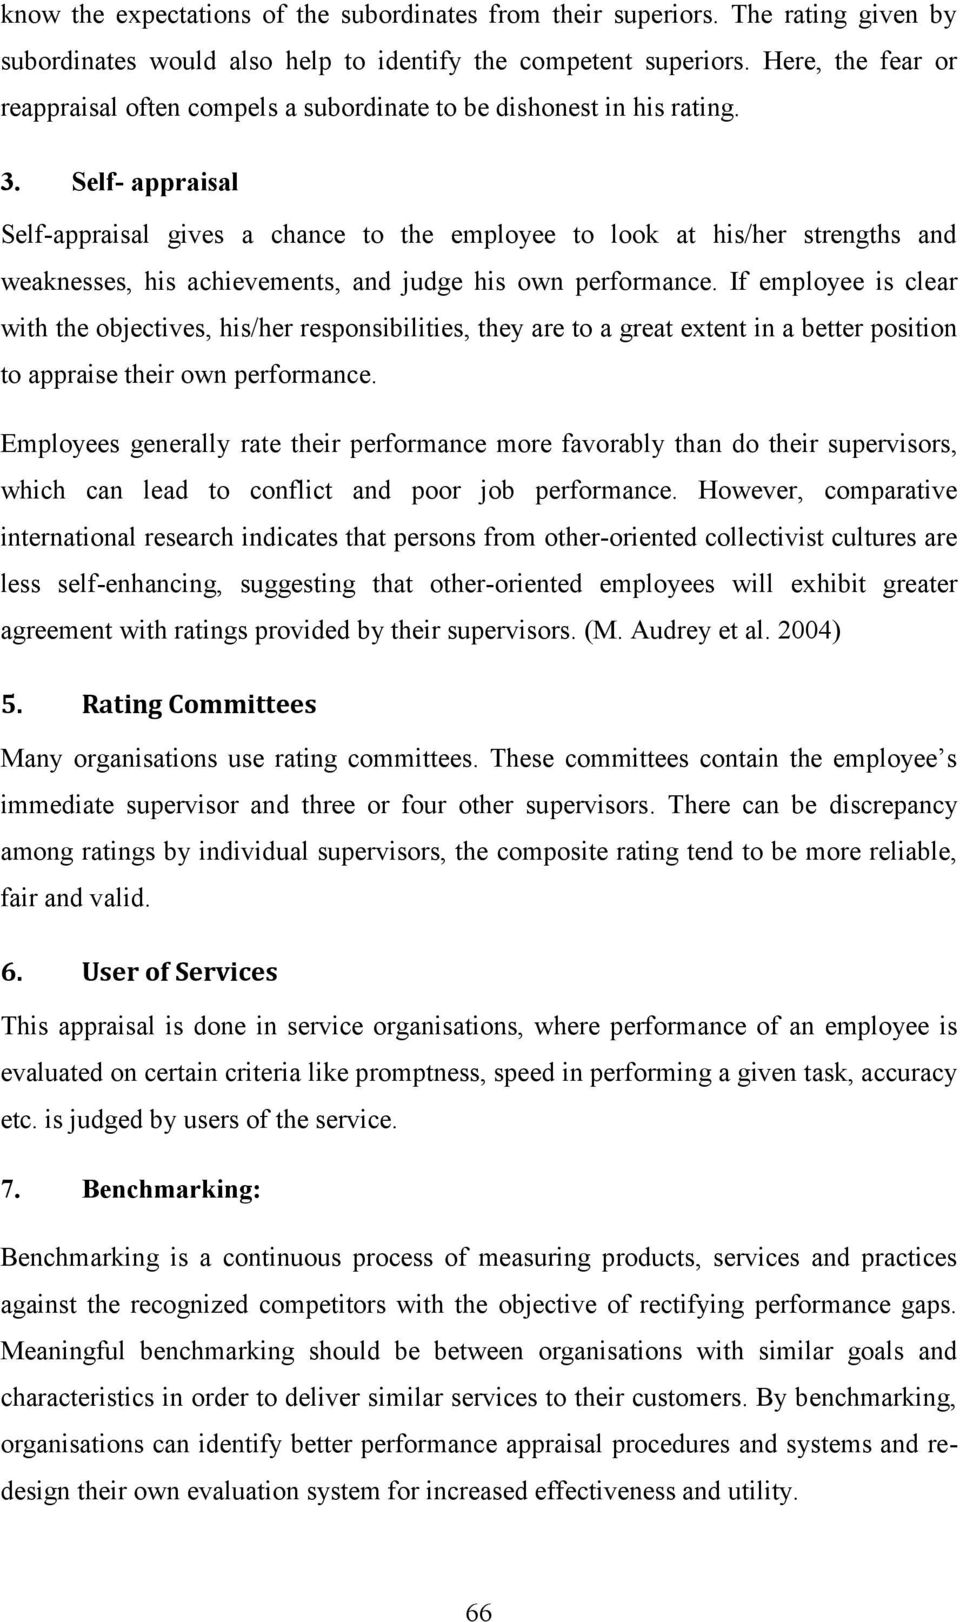 chapter 3 performance appraisal parameters pdf self appraisal self appraisal gives a chance to the employee to look at his